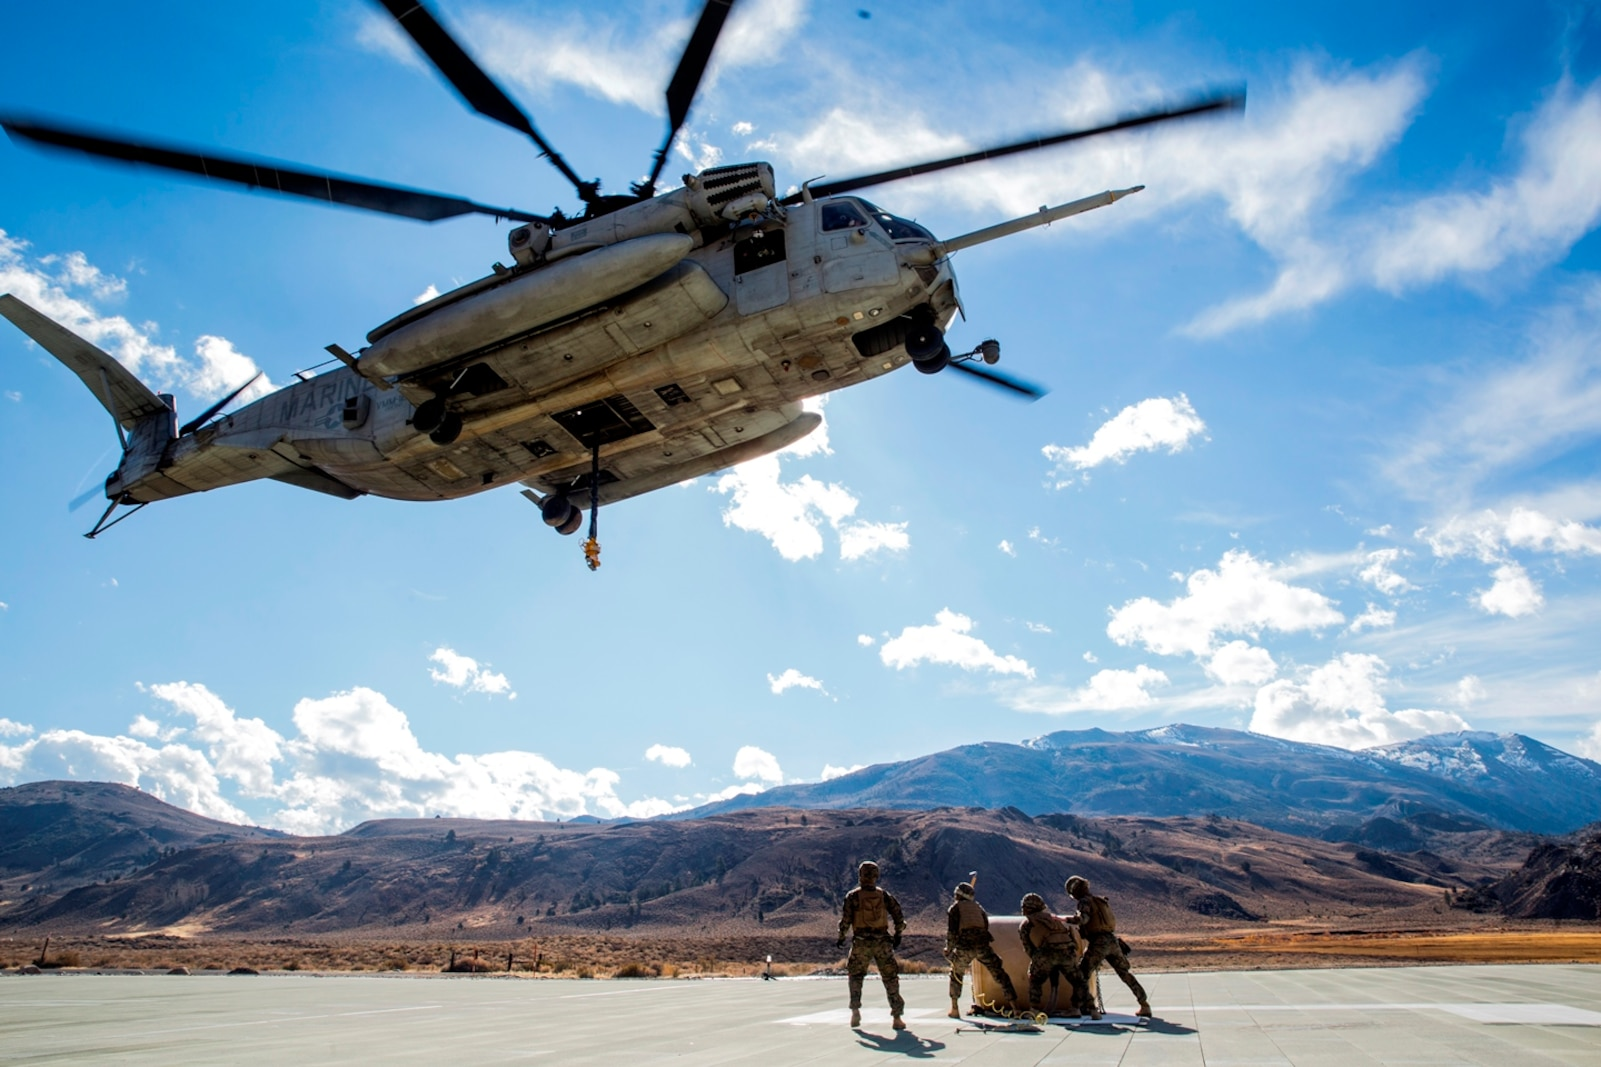 A CH-53E Super Stallion, with Marine Heavy Helicopter Squadron 466, hovers to pick up a 500-gallon drum of water from U.S. Marines with Combat Logistics Battalion 15, 1st Marine Logistics Group and 3rd Battalion, 4th Marine Regiment, 1st Marine Division during a Helicopter Support Team drill at Mountain Warfare Training Center, Bridgeport, Calif., Oct. 25, 2016. The drum was taken into the Sierra Mesa Mountains to support Marines who are conducting field operations during Mountain Exercise 6-16. (U.S. Marine Corps photo by Lance Cpl. Adam Dublinske)